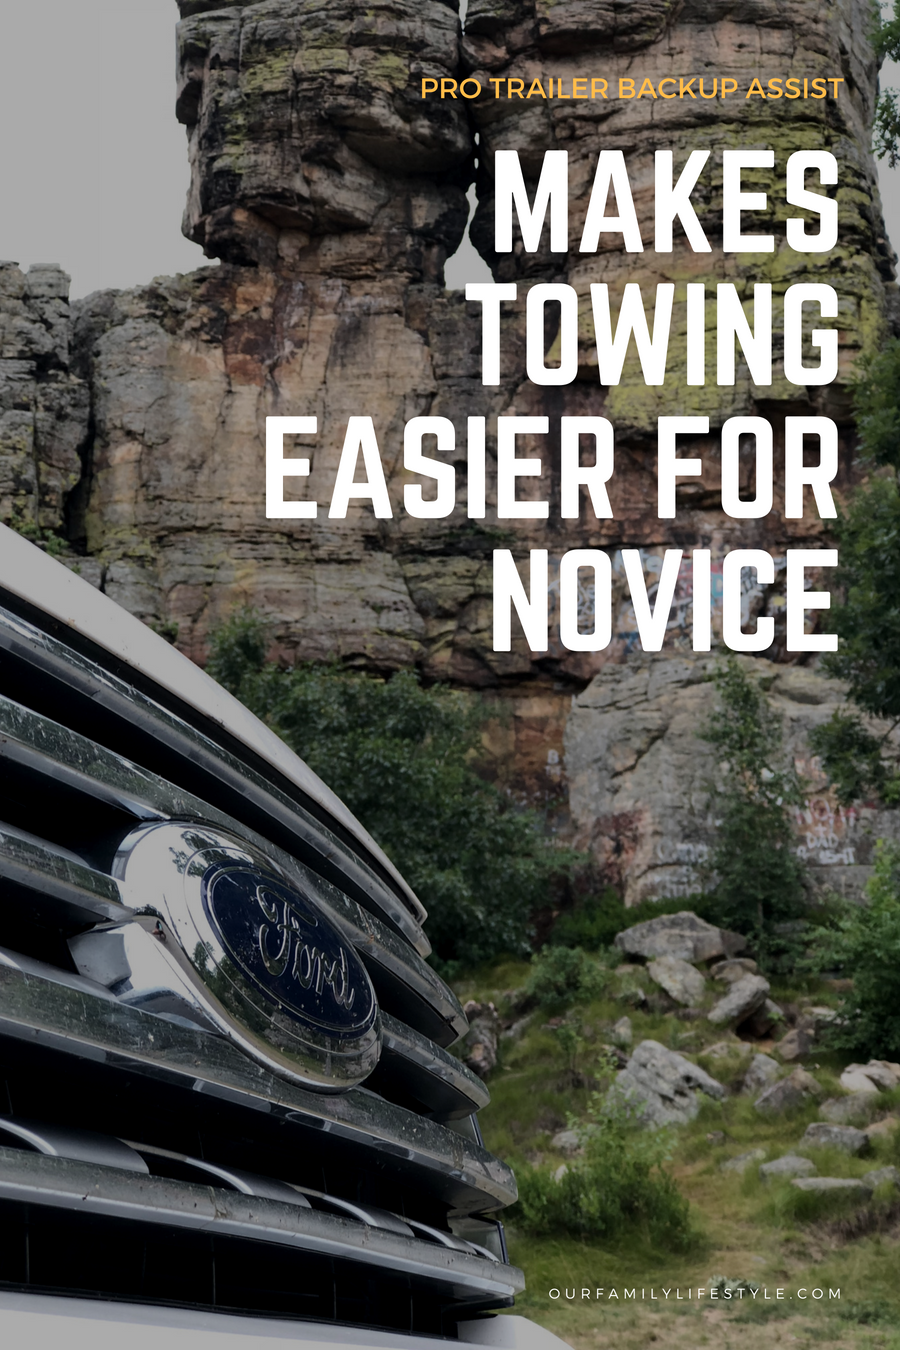 Ford's Pro Trailer Backup Assist Makes Towing Easier for Novice